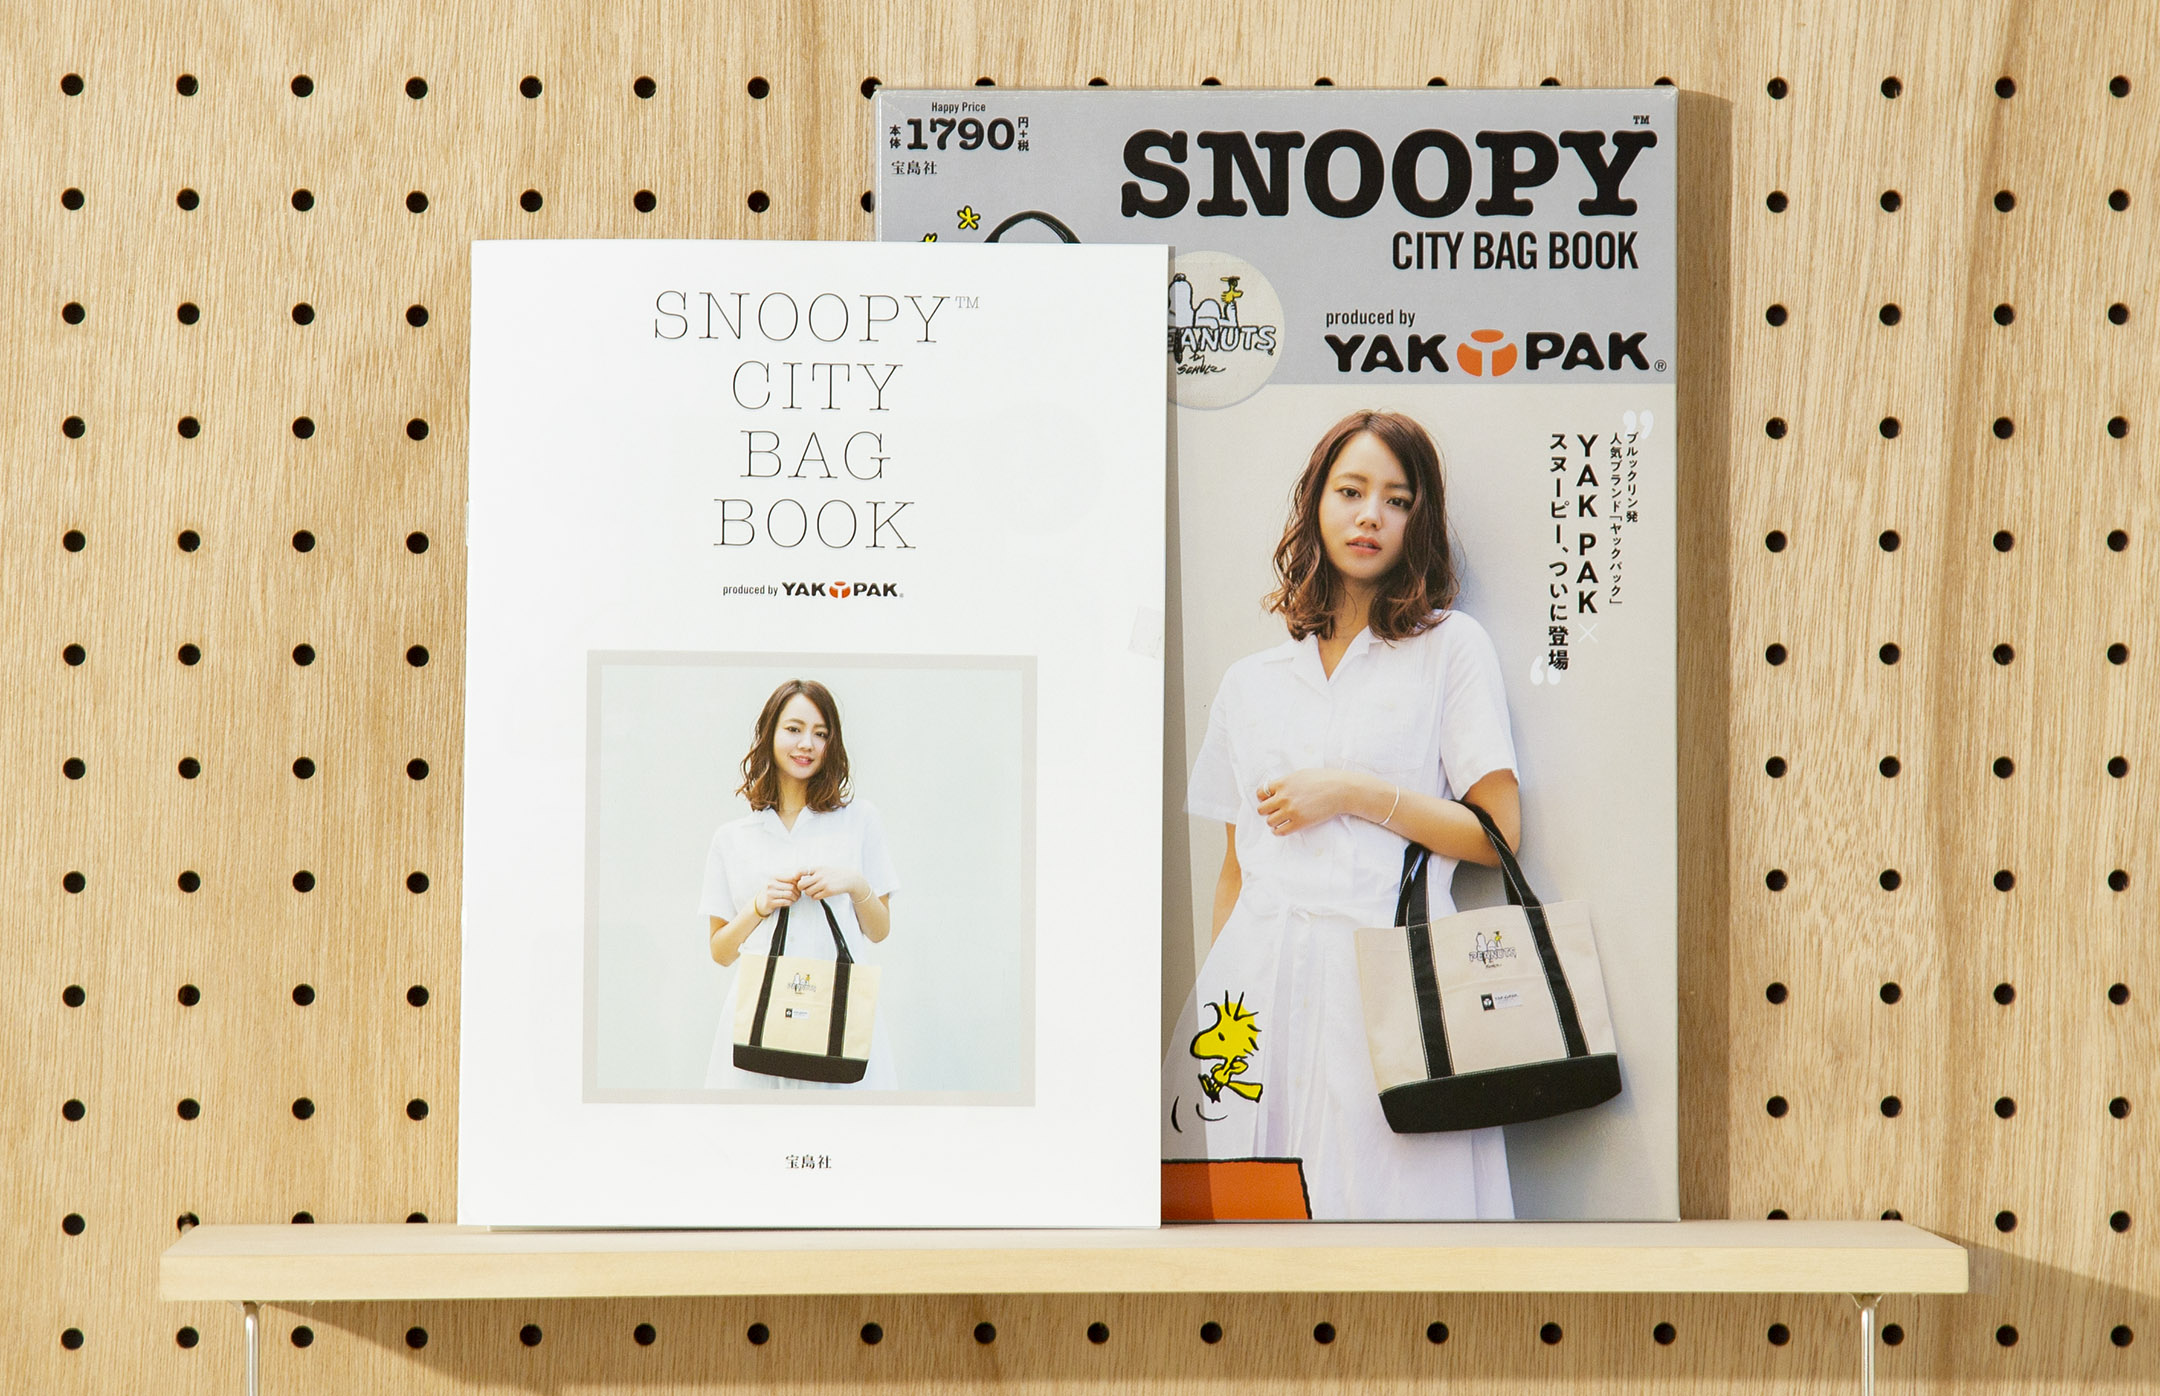 SNOOPY CITY BAG BOOK produced by YAKPAK